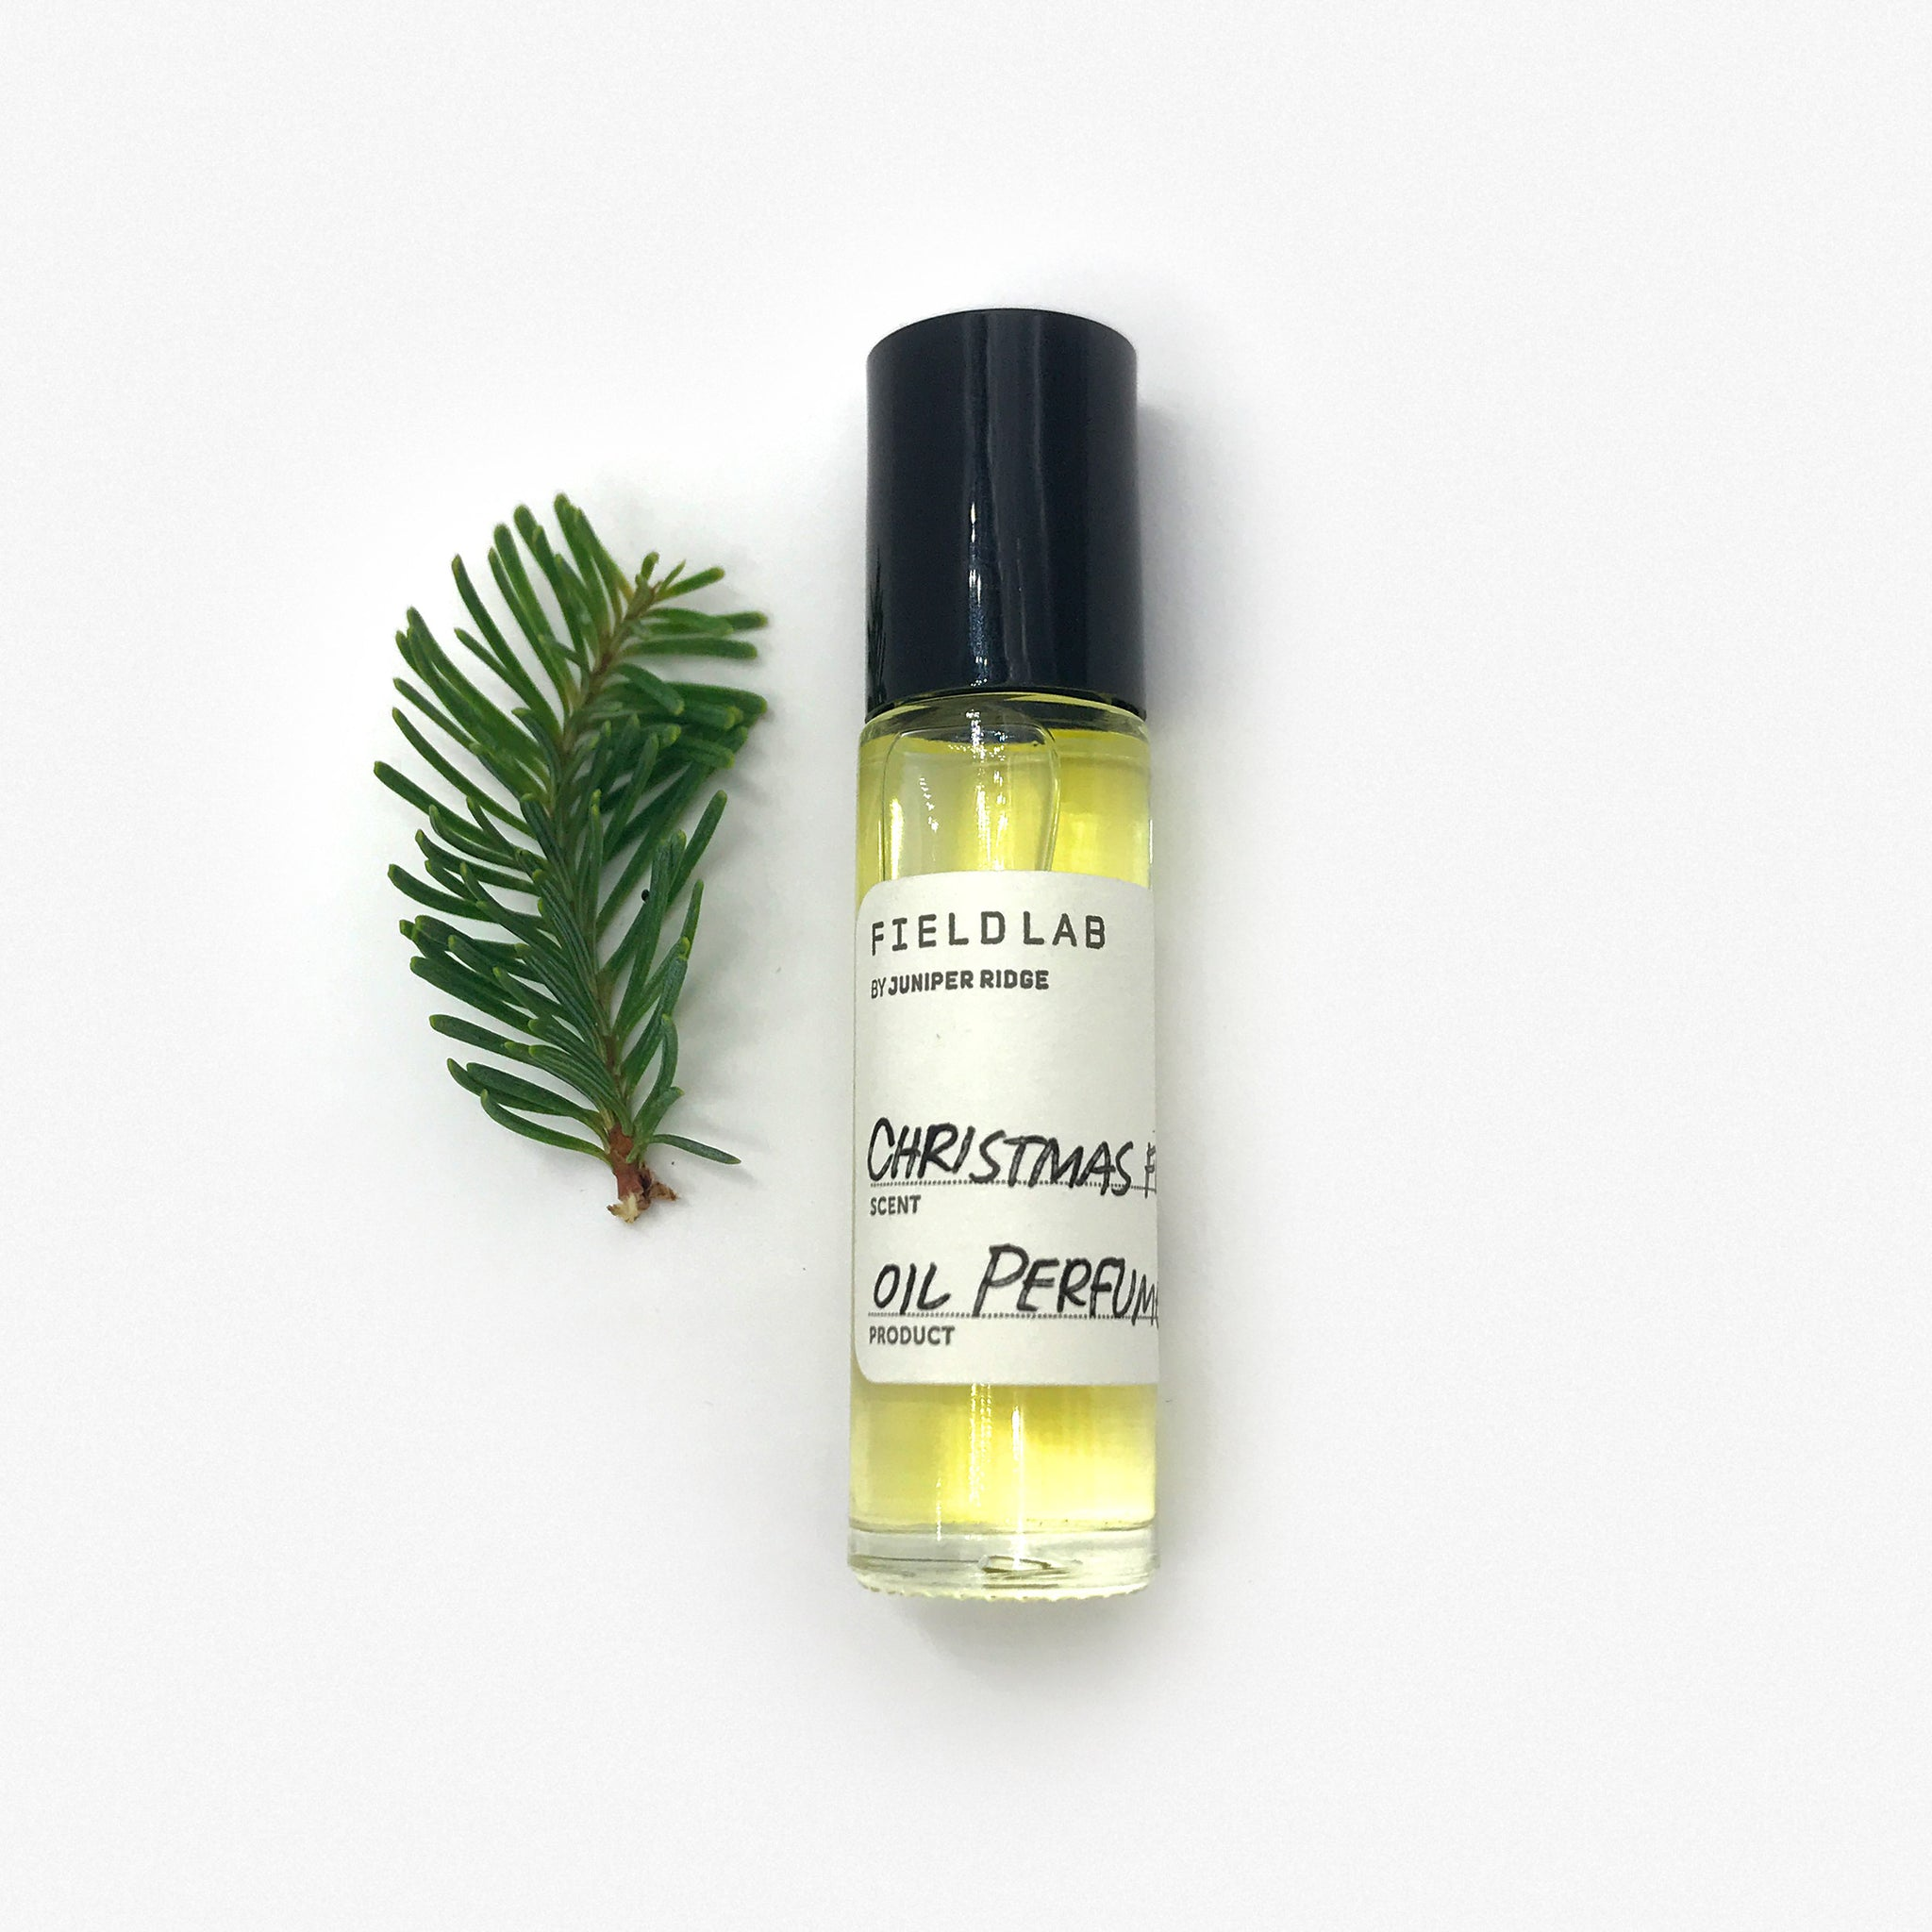 Juniper Ridge Christmas Fir Perfume